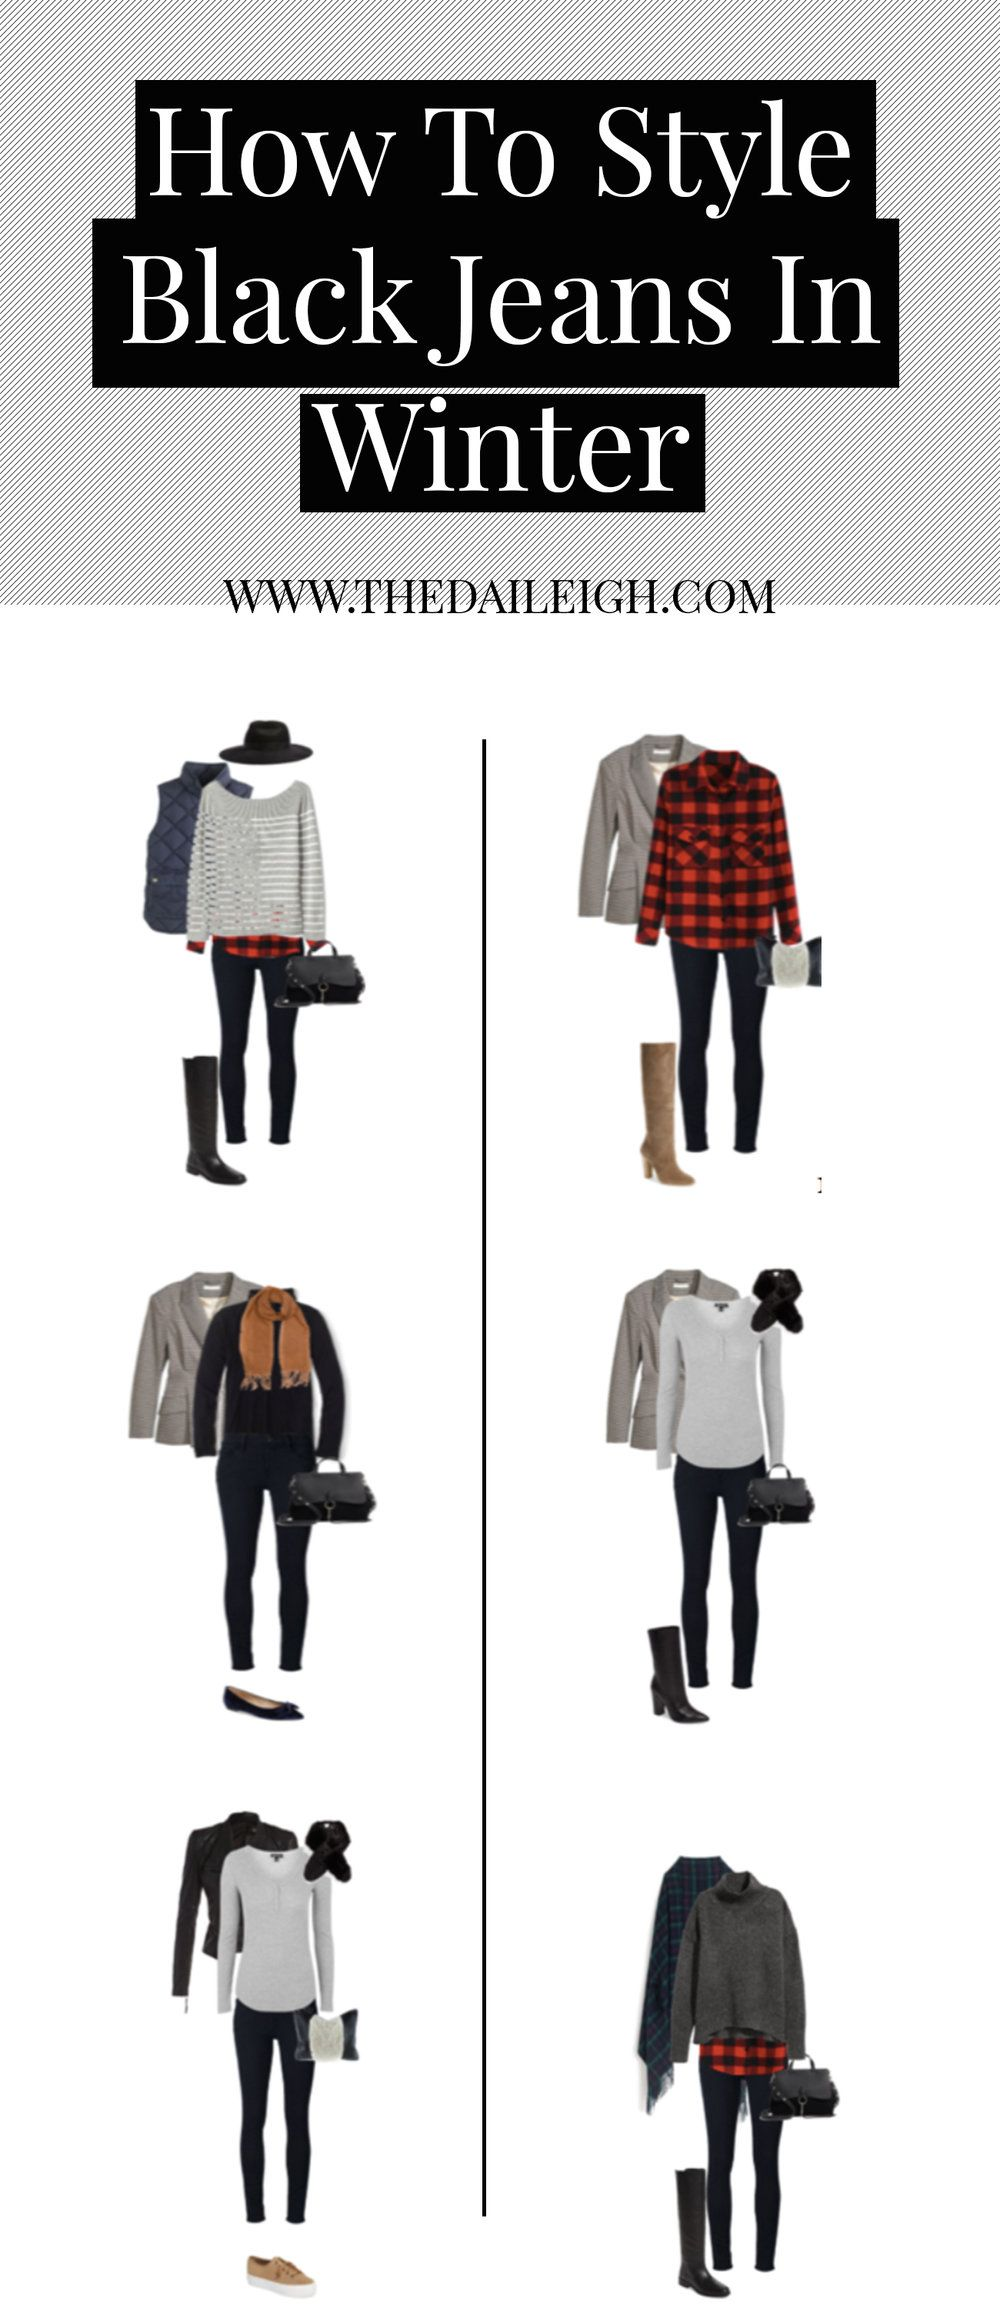 How To Style Black Jeans In Winter